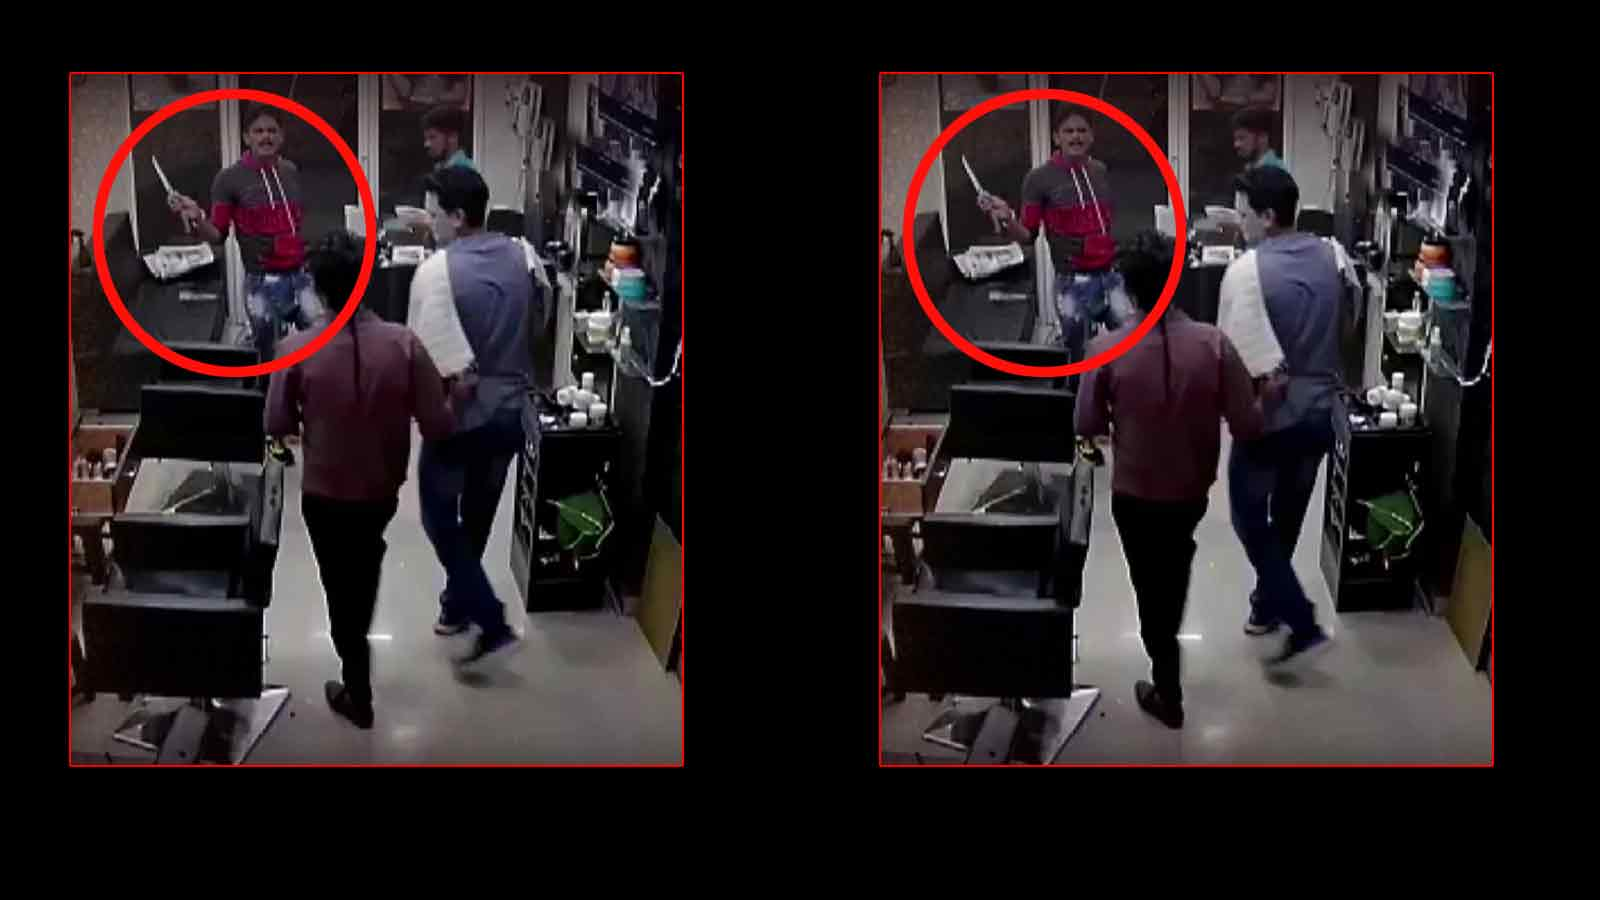 cctv-miscreants-brandishing-knives-attack-shop-owners-in-mps-indore